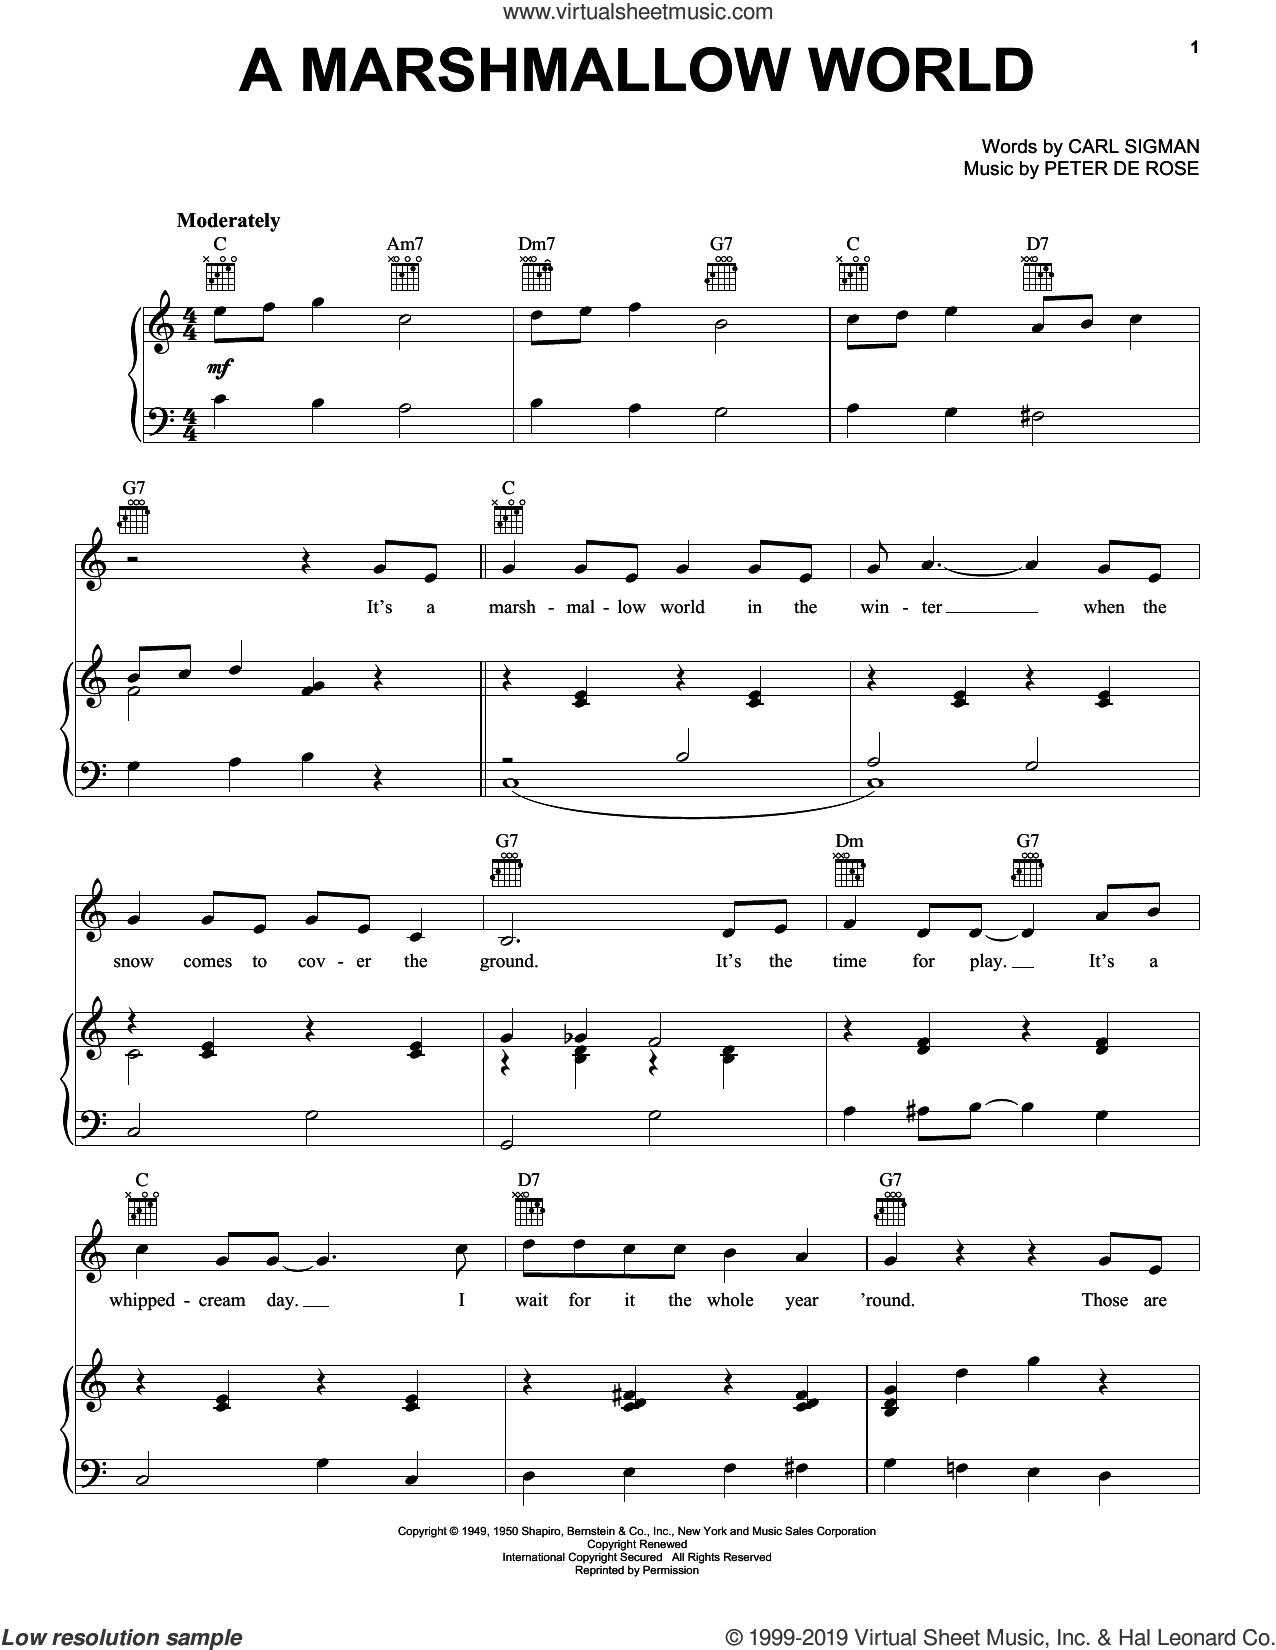 A Marshmallow World sheet music for voice, piano or guitar by Carl Sigman and Peter DeRose, intermediate skill level